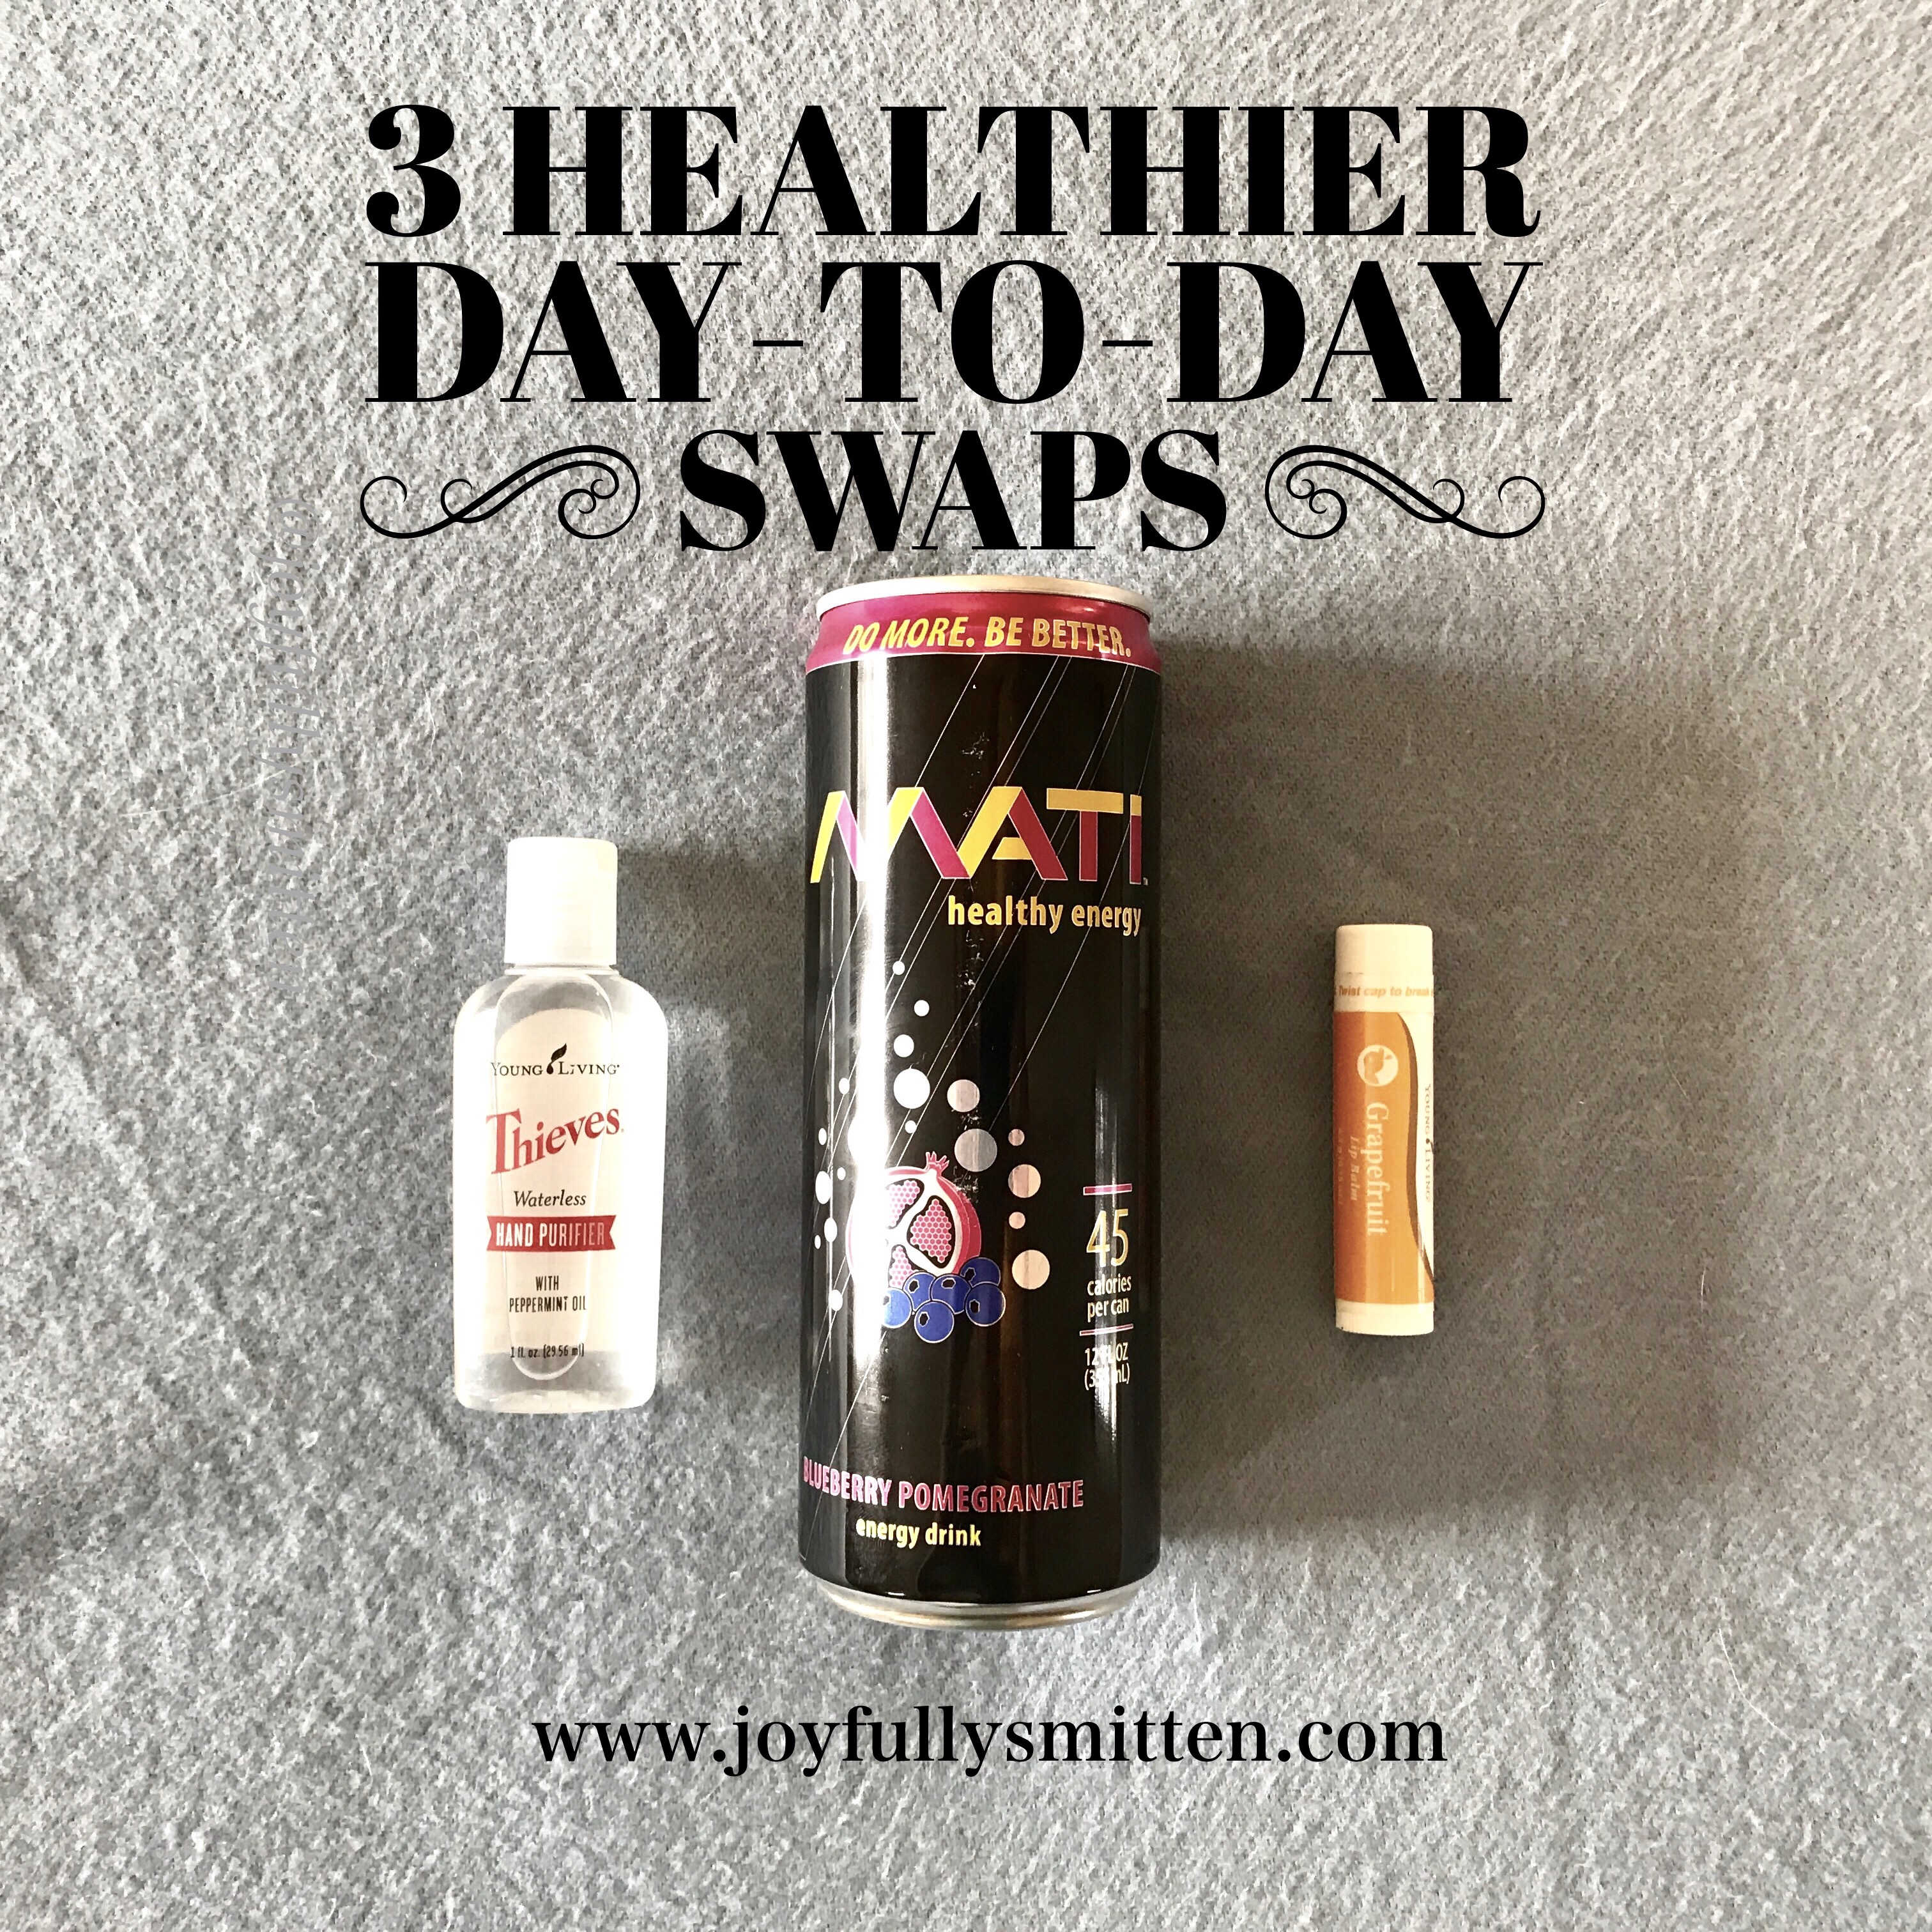 Three Healthier Day To Day Swaps